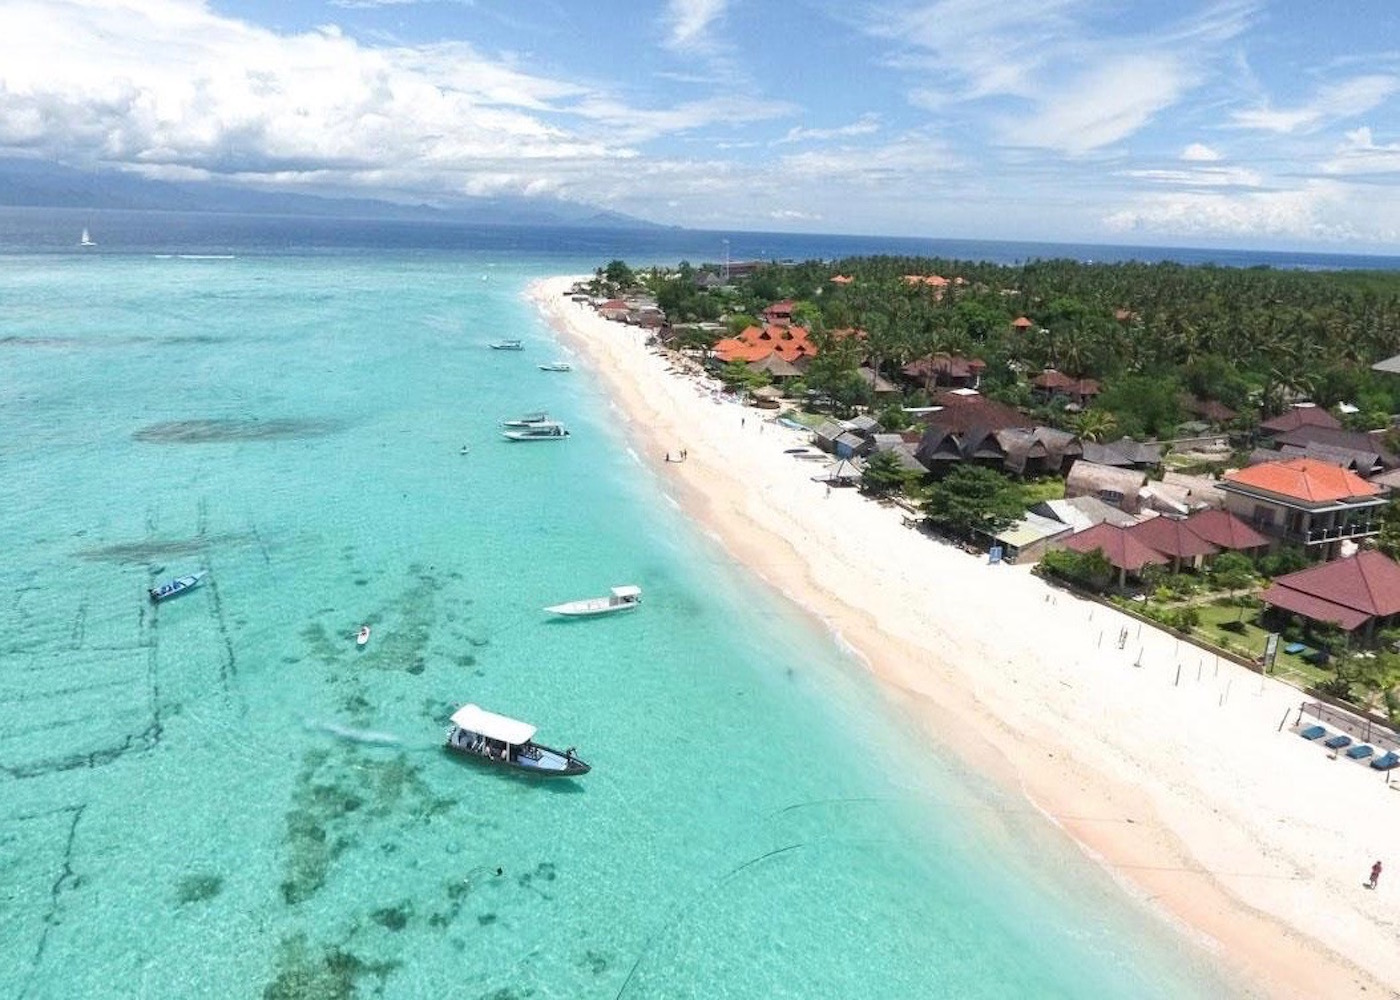 Aerial view of the white sand beach at Nusa Lembongan Island, Bali, Indonesia